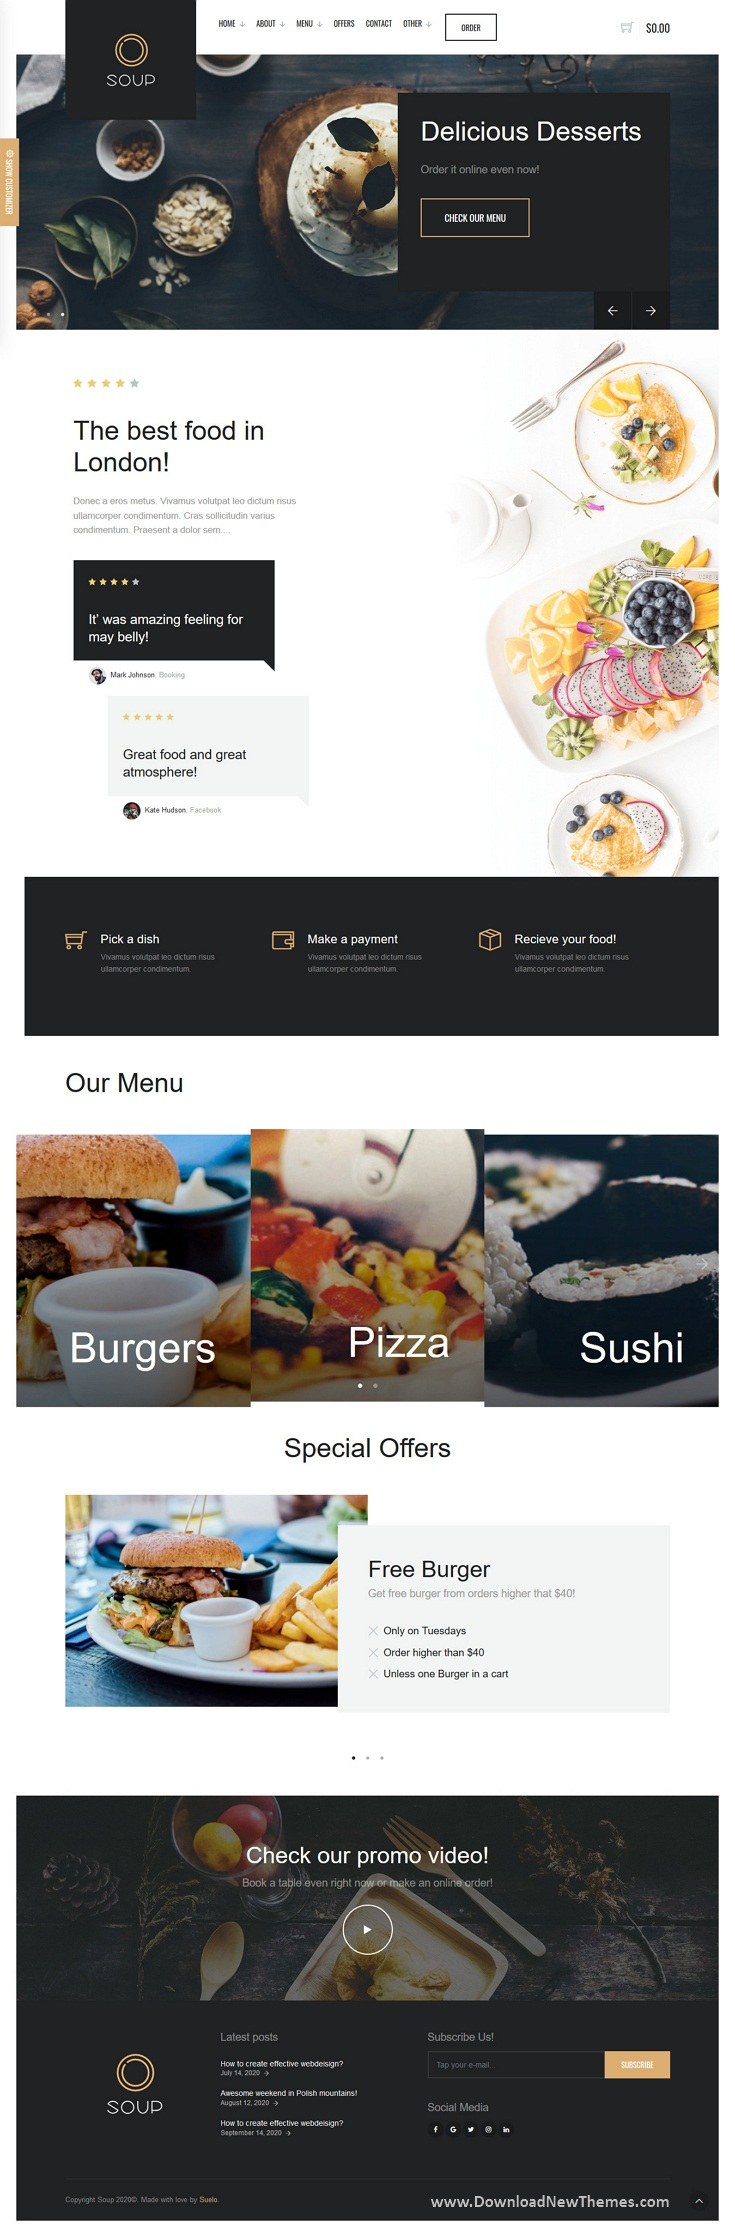 Restaurant with Online Ordering System Template